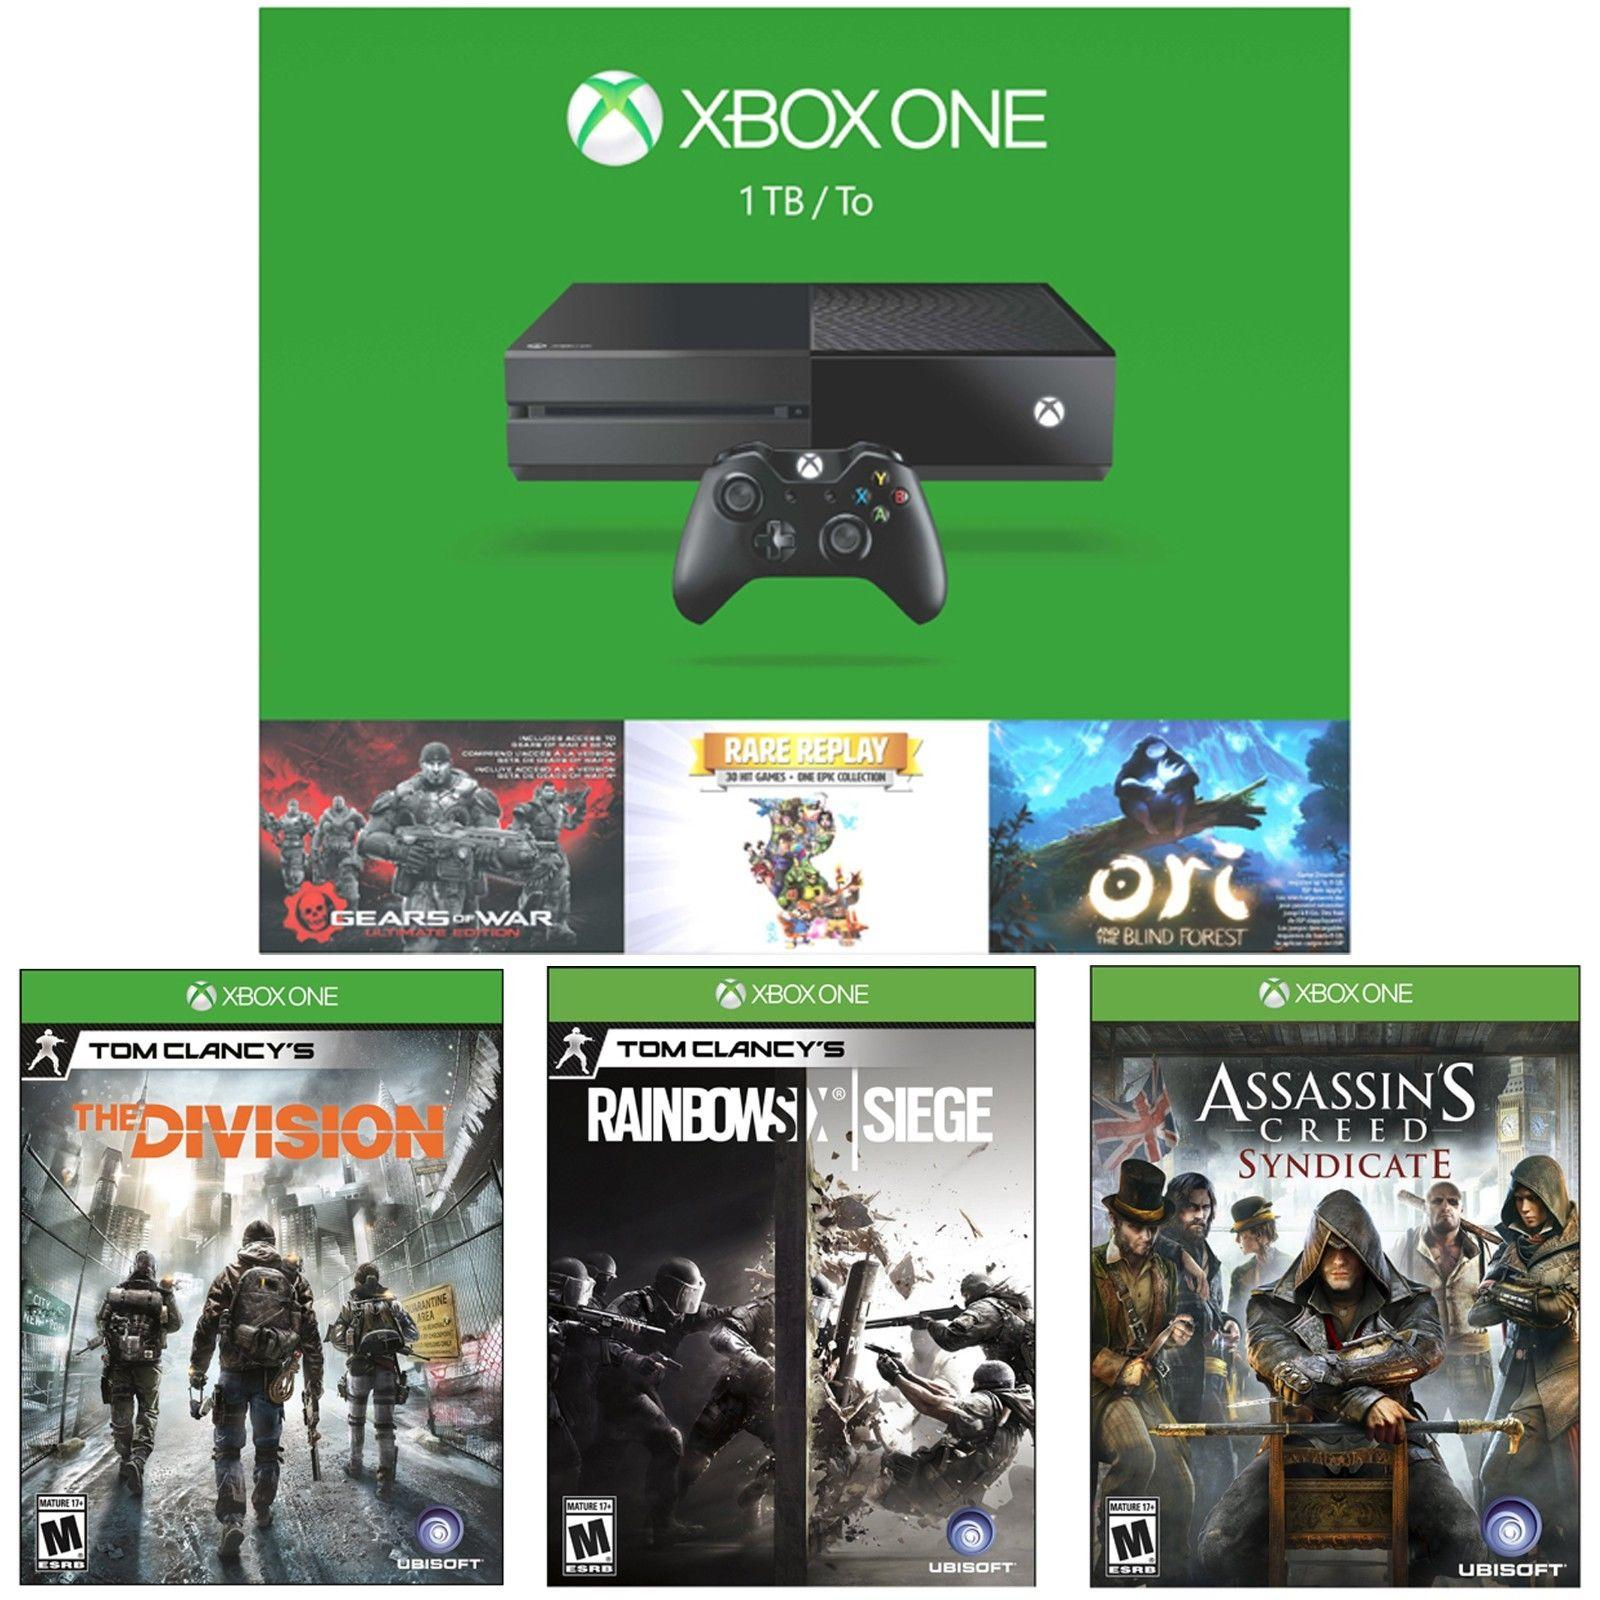 $399 Xbox One 1TB Holiday Bundle+Tom Clancy's Division+Rainbow Six Siege+Assassin's